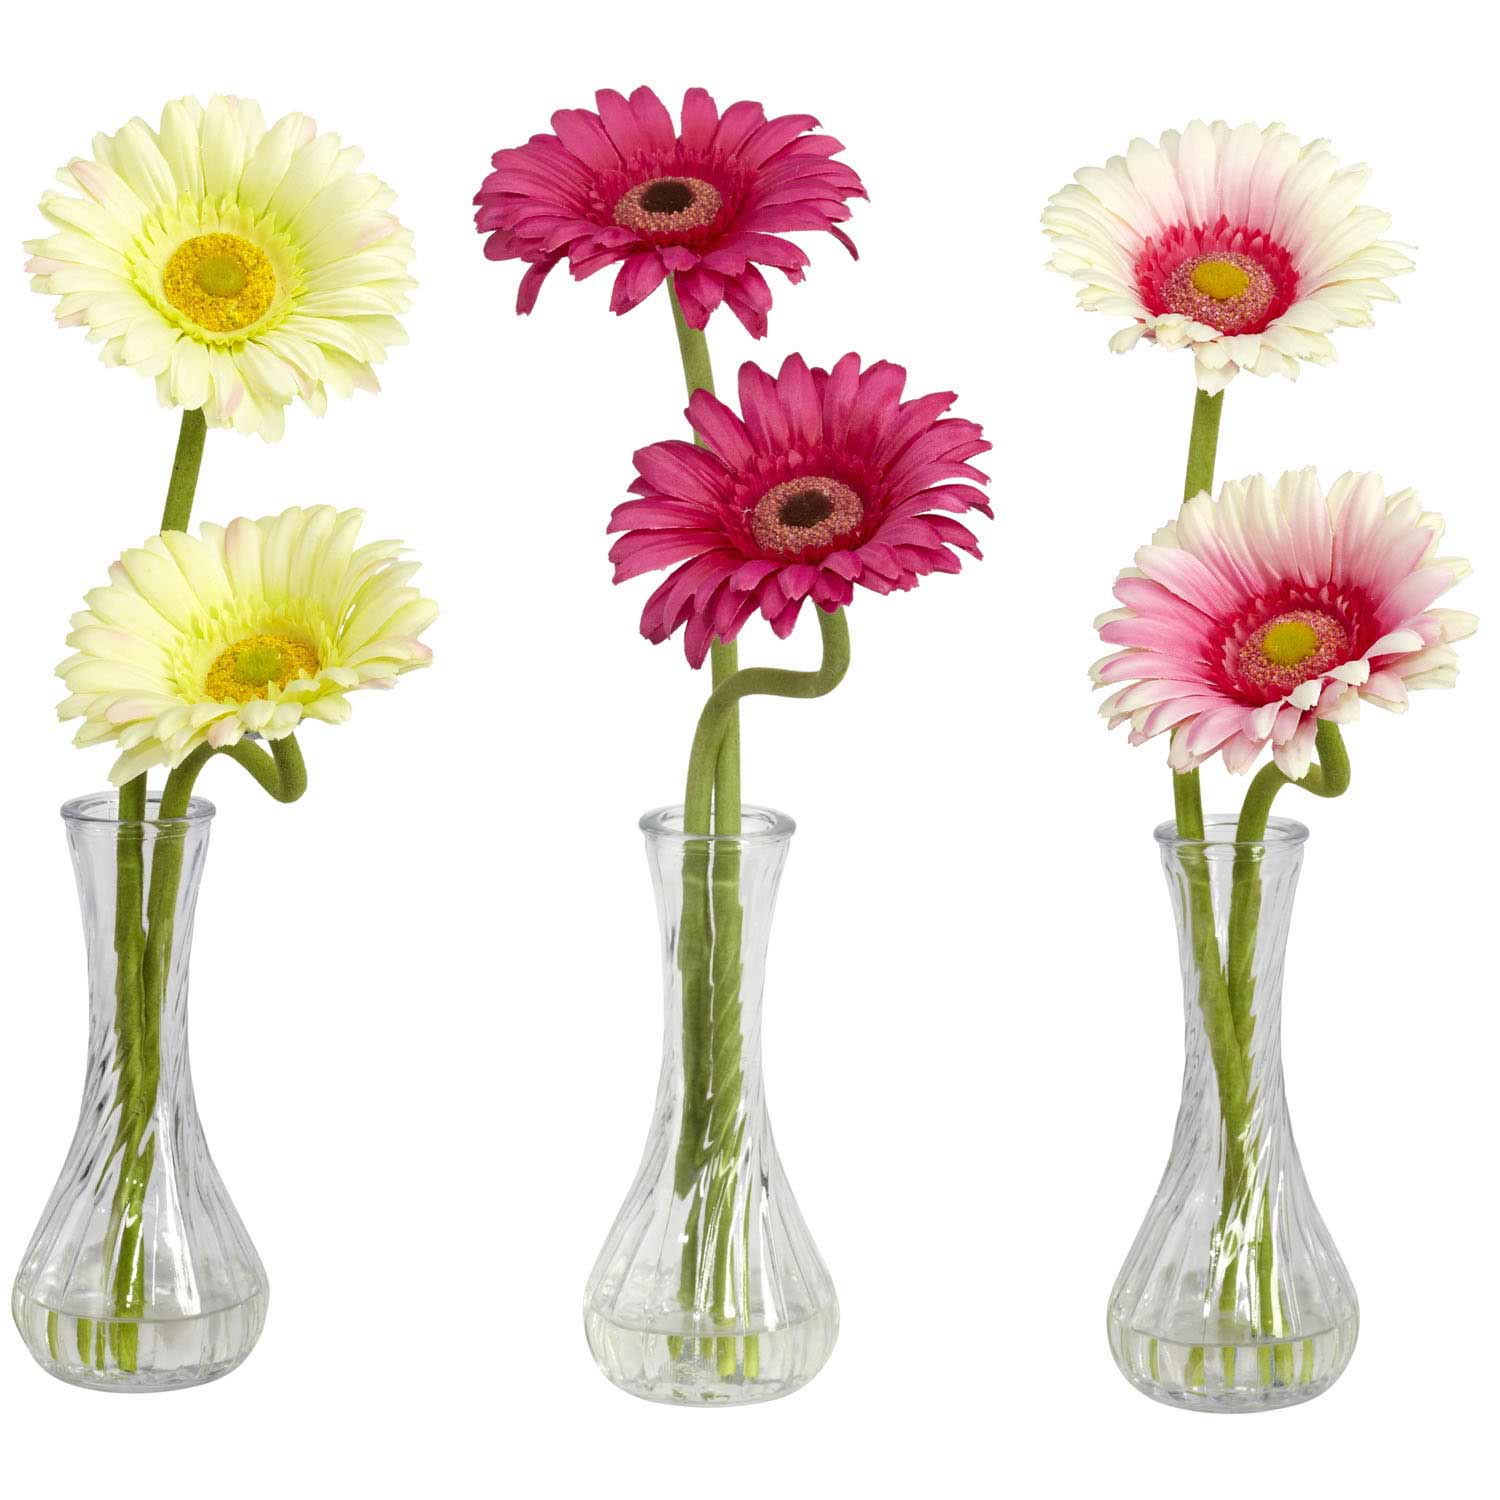 Gerbera Daisy Arrangements Vases: Gerber Daisy With Bud Vase (Set Of 3) 1248 Nearly Natural